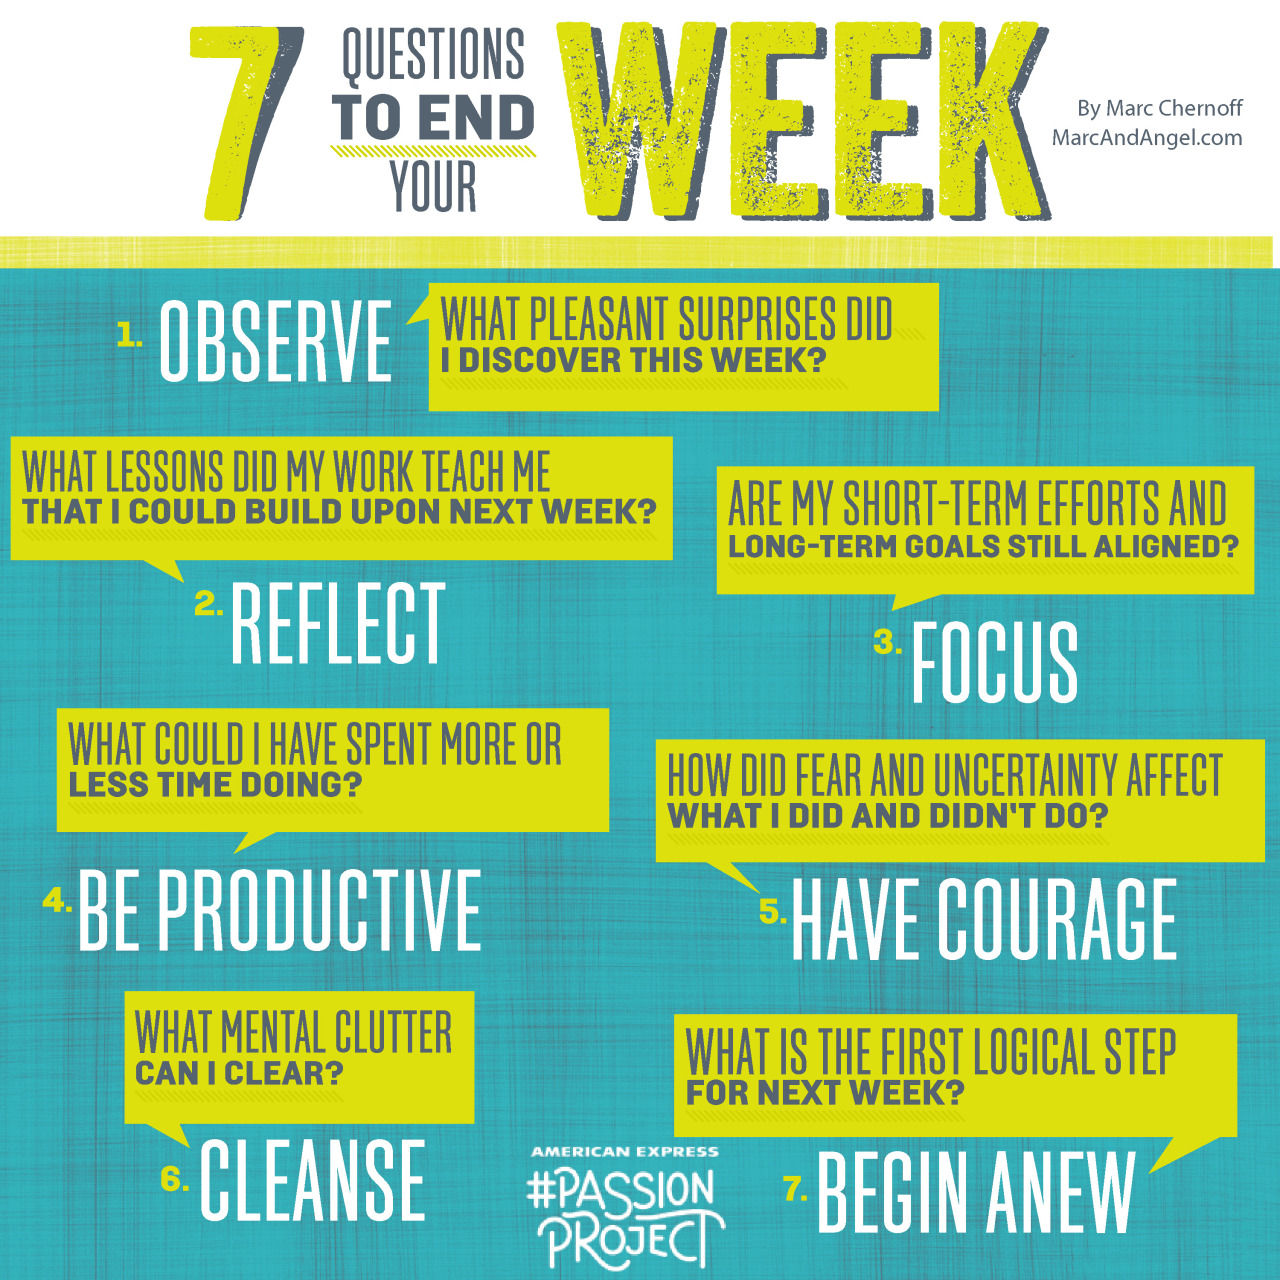 week 5 weekly reflection View essay - psyc 101 week 5 paperdocx from psyc101 101 at american  public university sleep journal and reflection project sleep  journal.